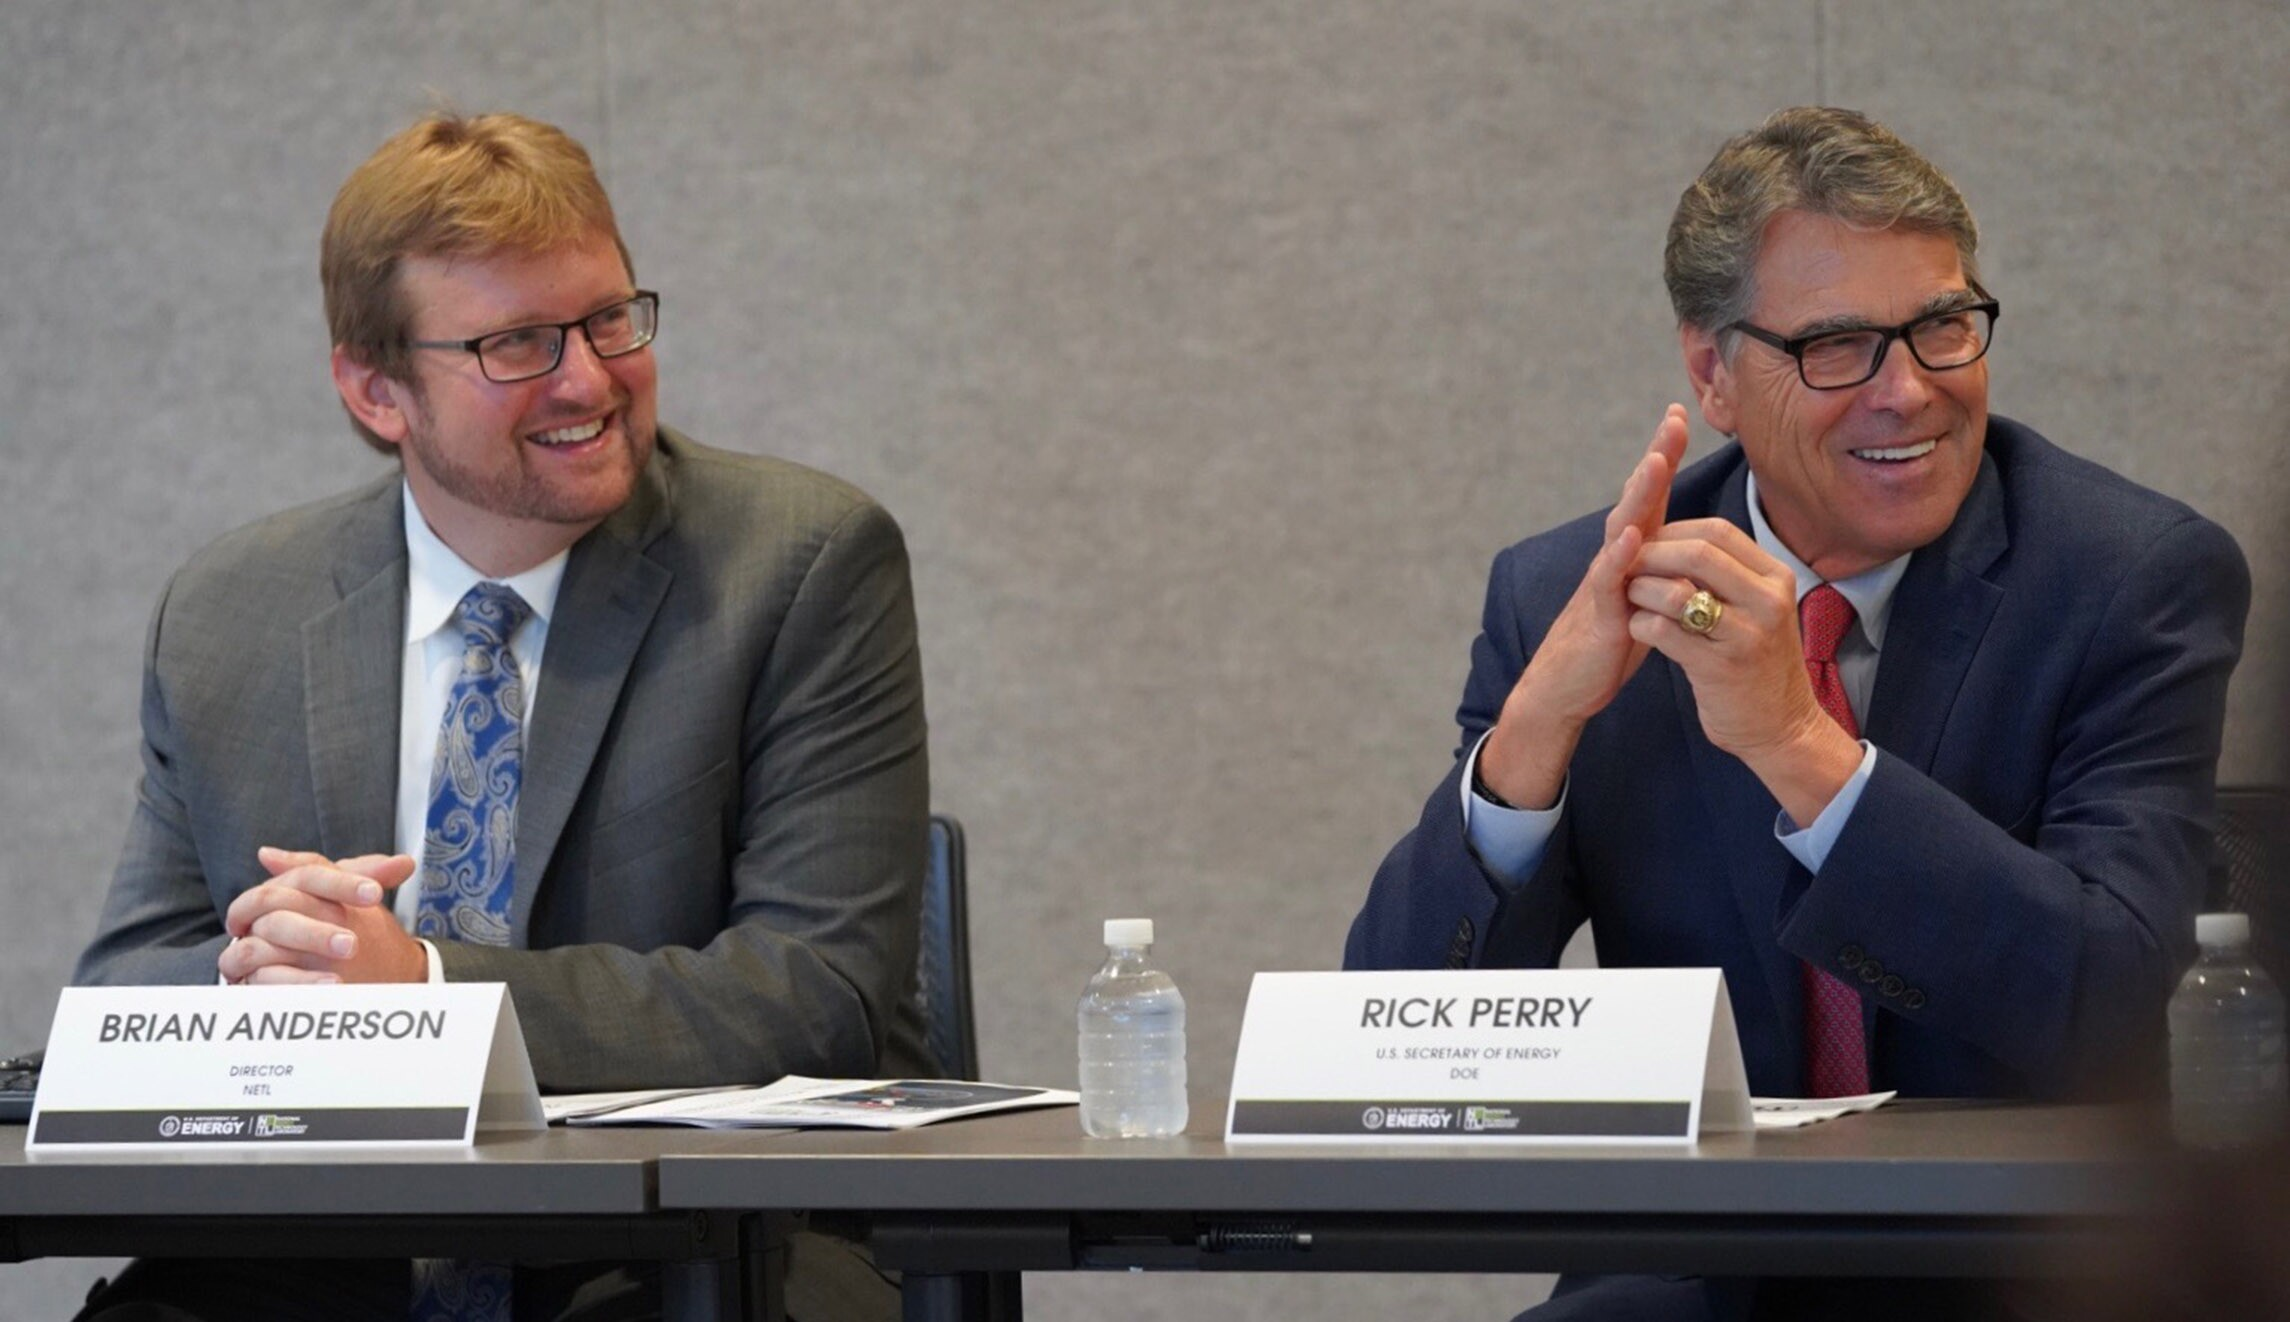 Energy Secretary Rick Perry (right) is seen with Brian Anderson, director of the National Energy Technology Laboratory , in Jefferson Hills, Pennsylvania.